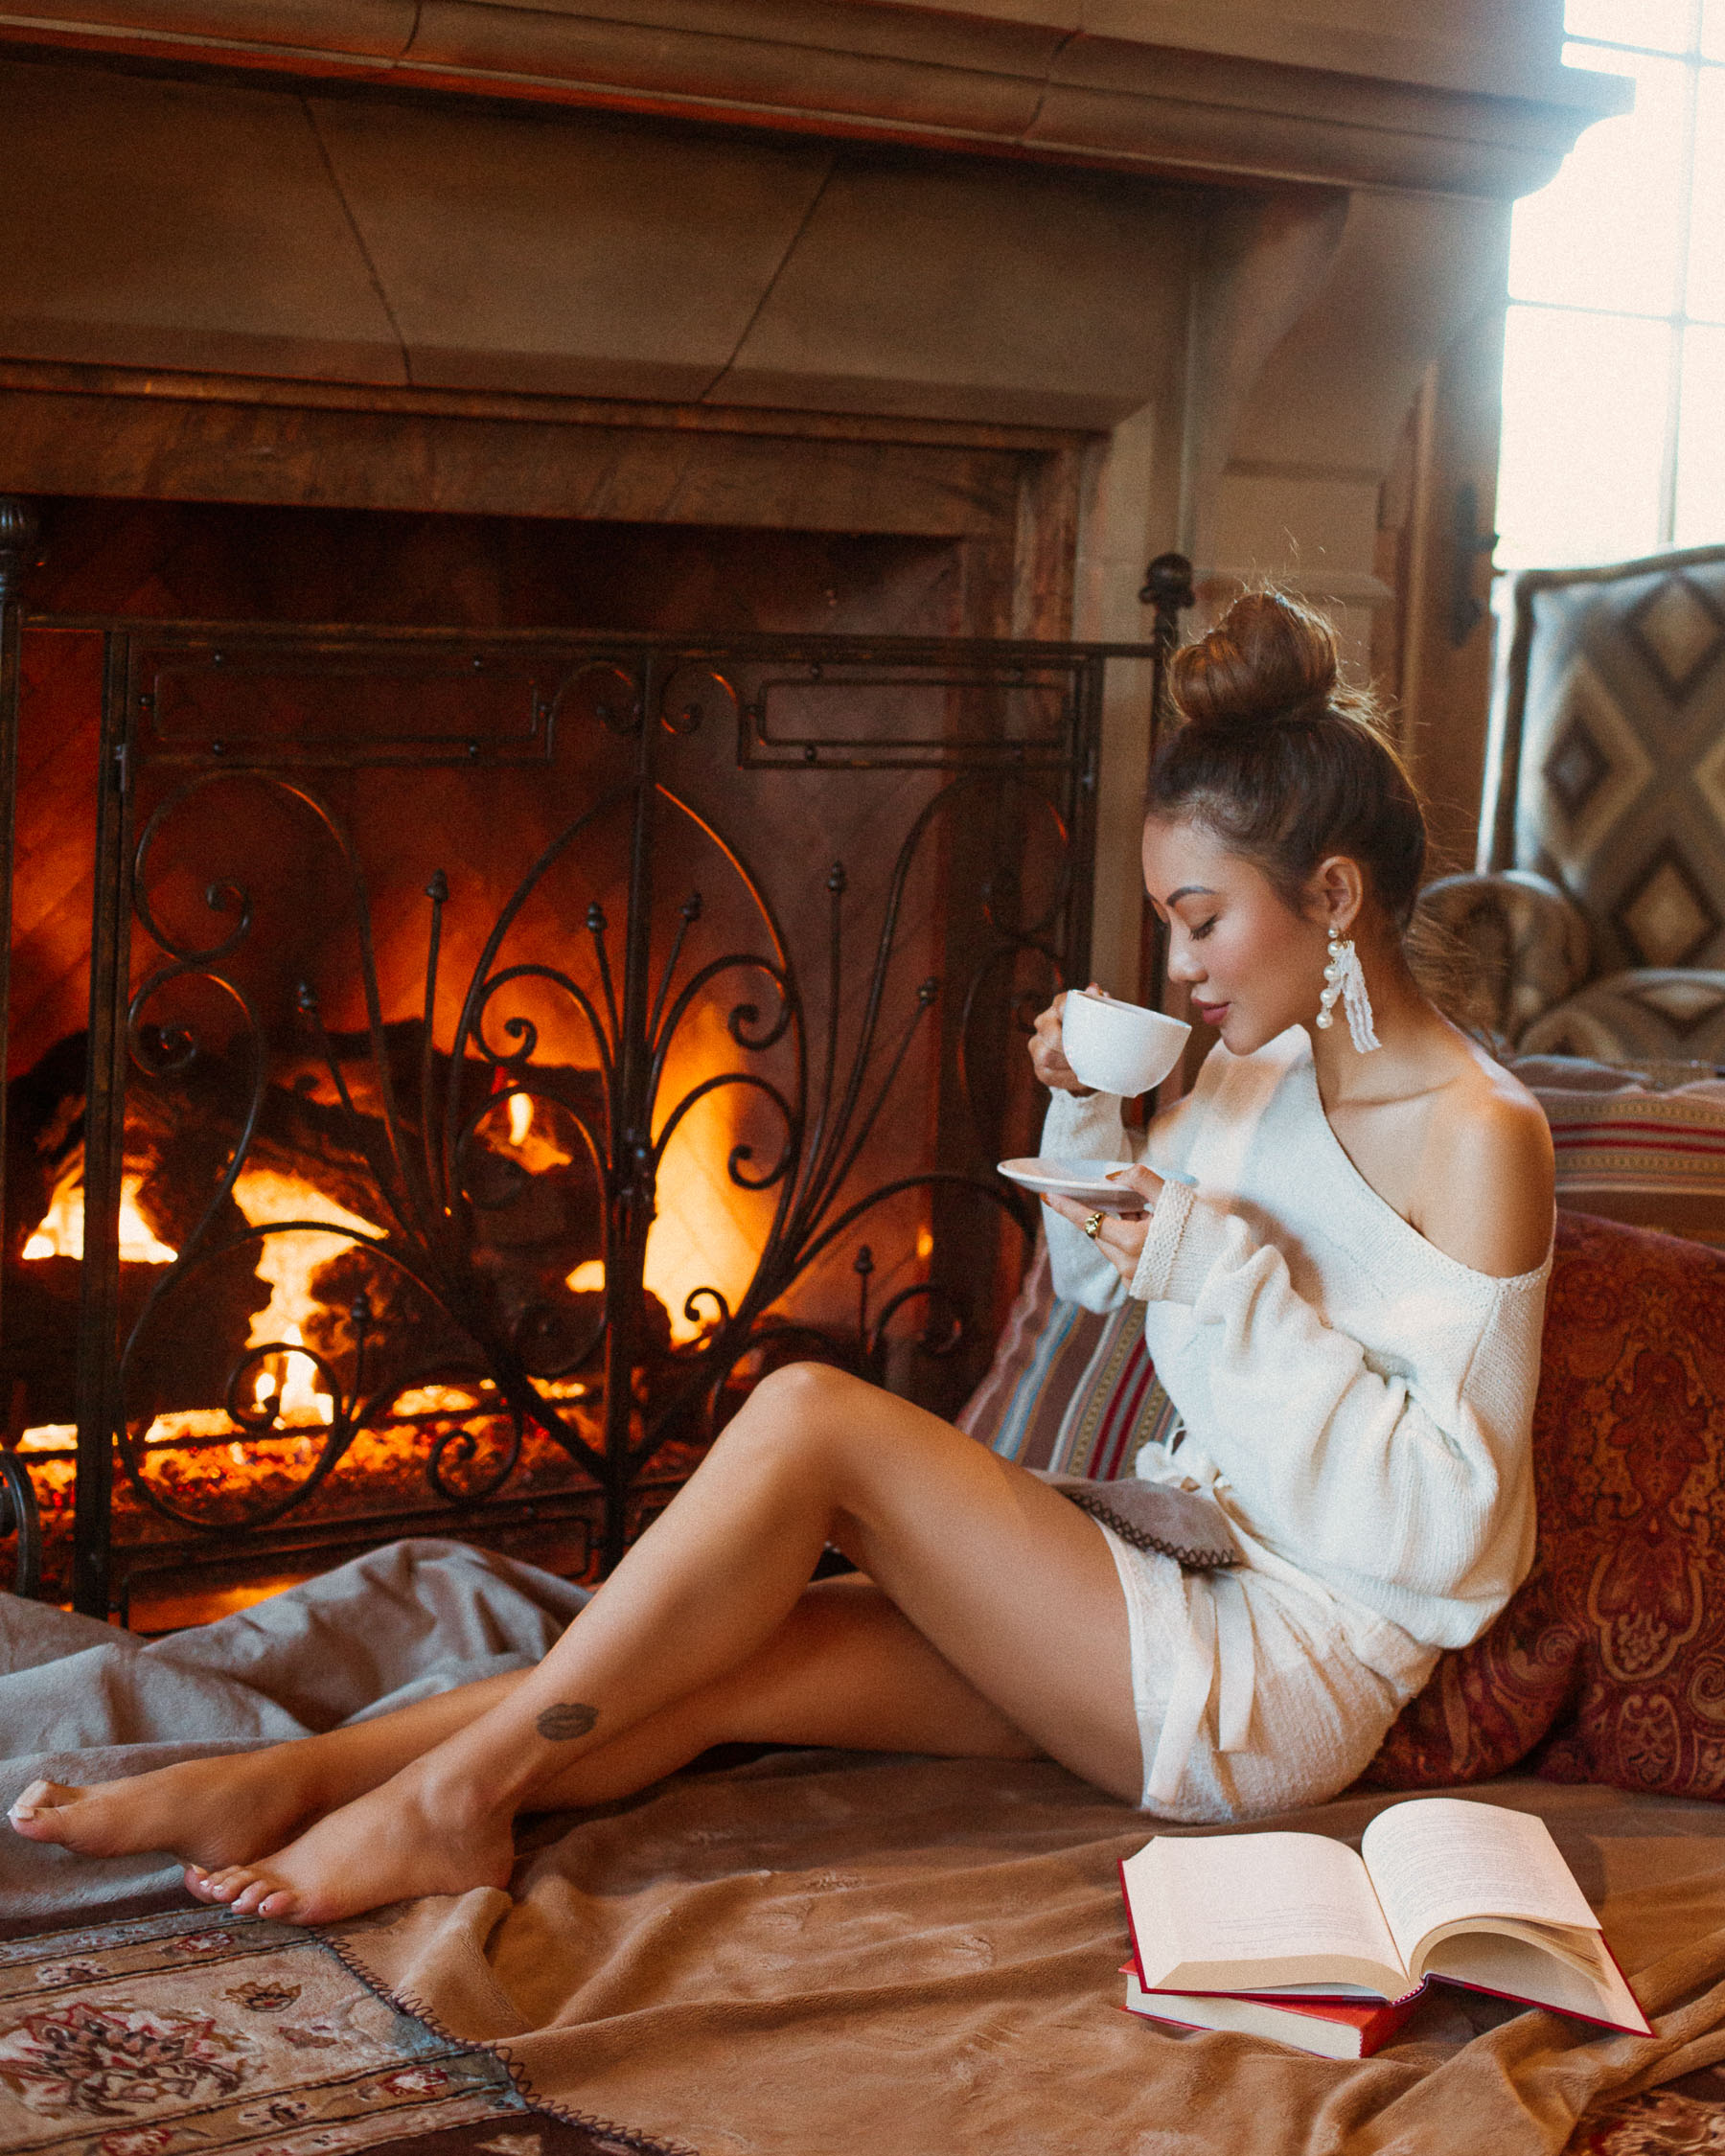 Make more time for yourself in the new year // Cozy white sweater by the fireplace // Notjessfashion.com